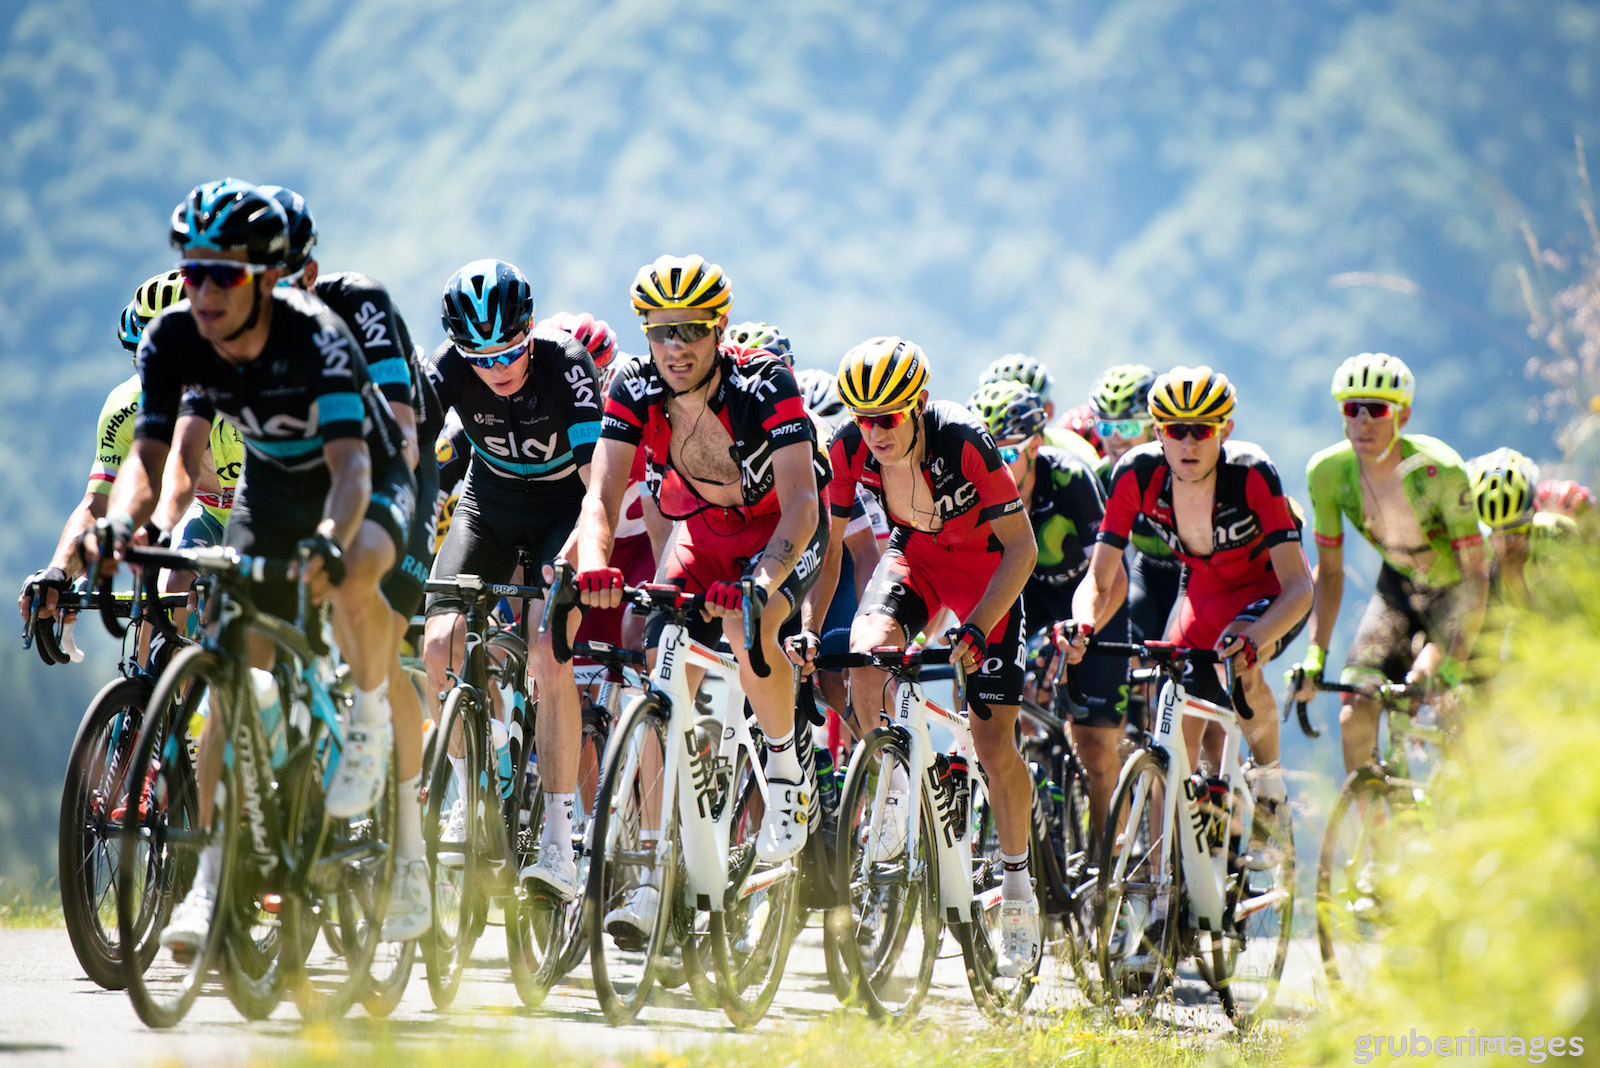 On Stage 8 of the 2016 Tour de France, the BMC Racing duo of Richie Porte and Tejay van Garderen finished in the chase group behind Chris Froome (Team Sky). Photo: Gruber Images